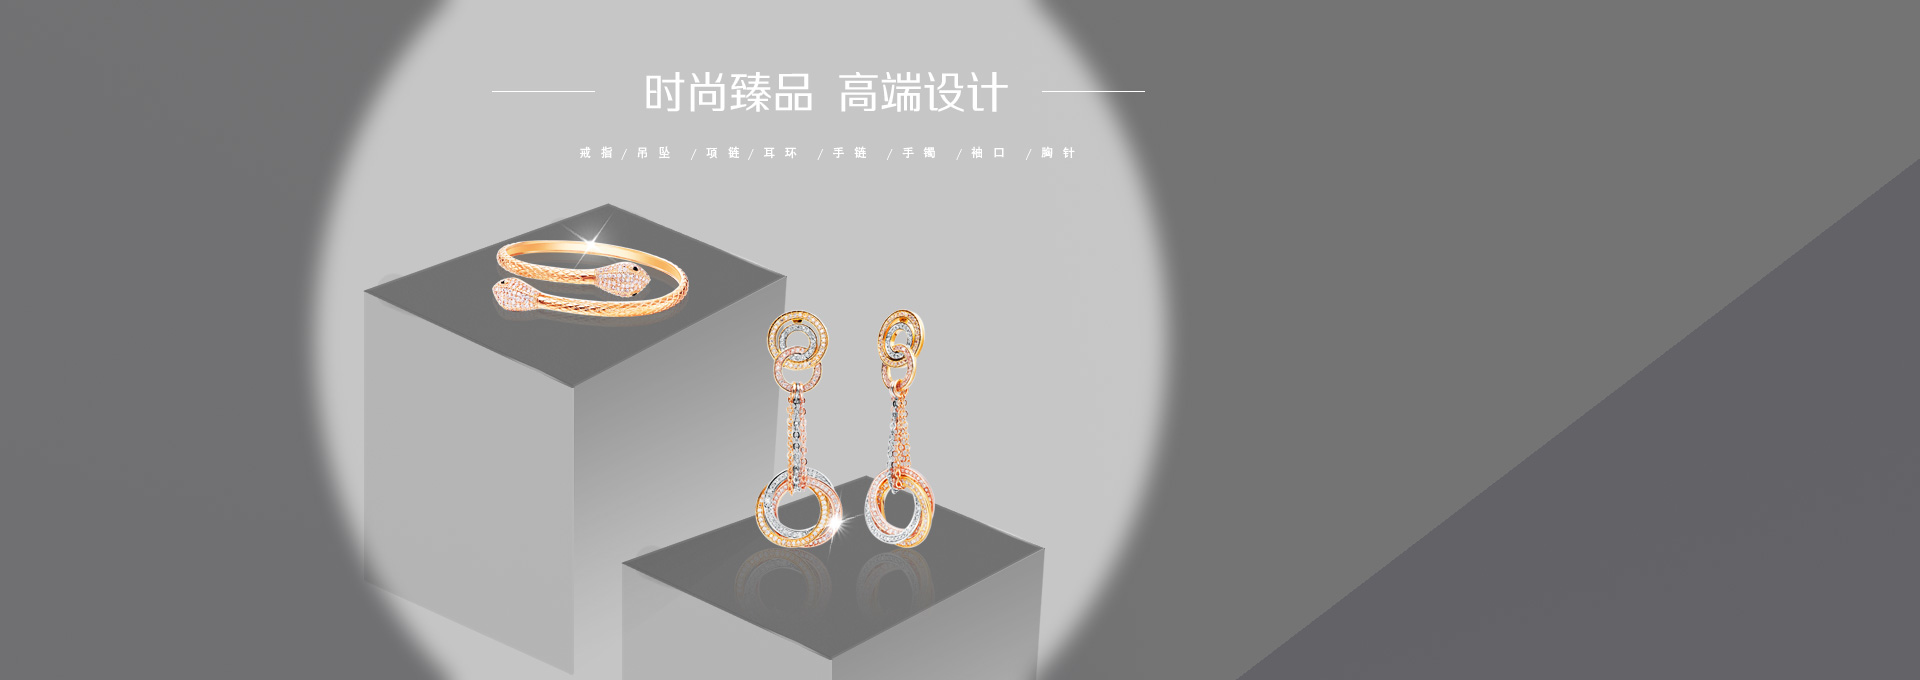 O.B.jewelry Co.,Ltd